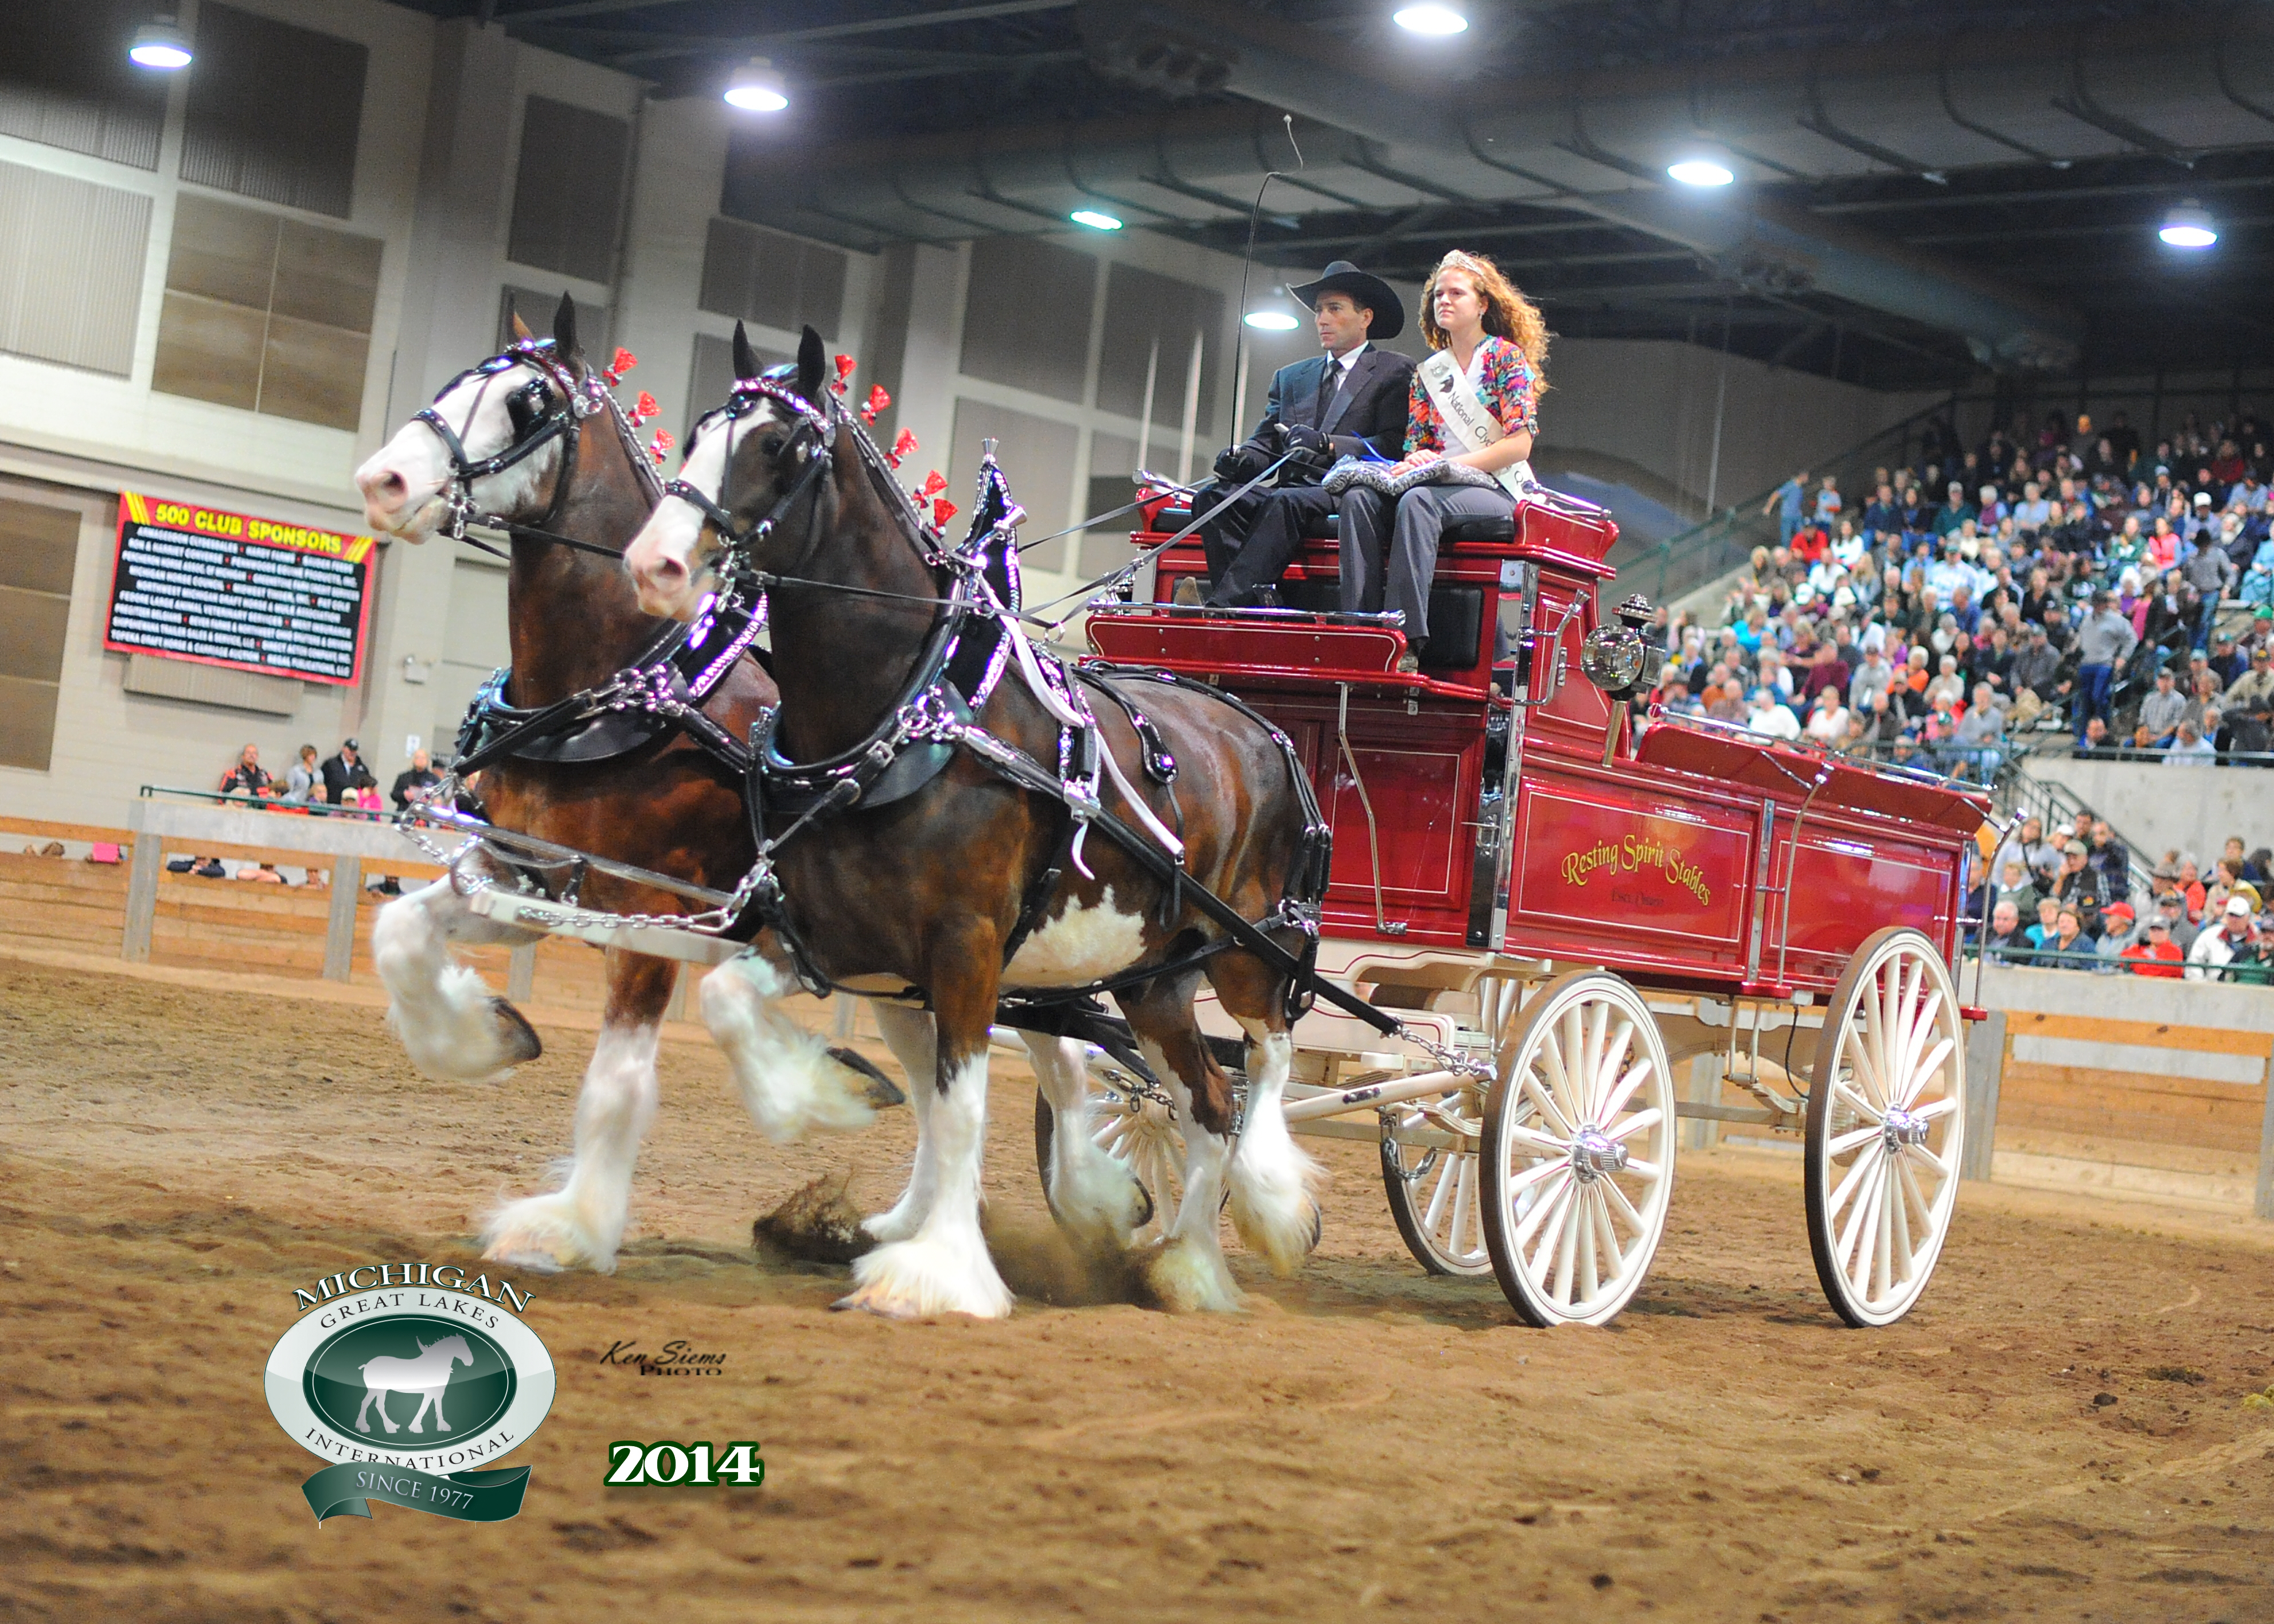 Clydesdale Equine SAE, North Montgomery FFA, Indiana